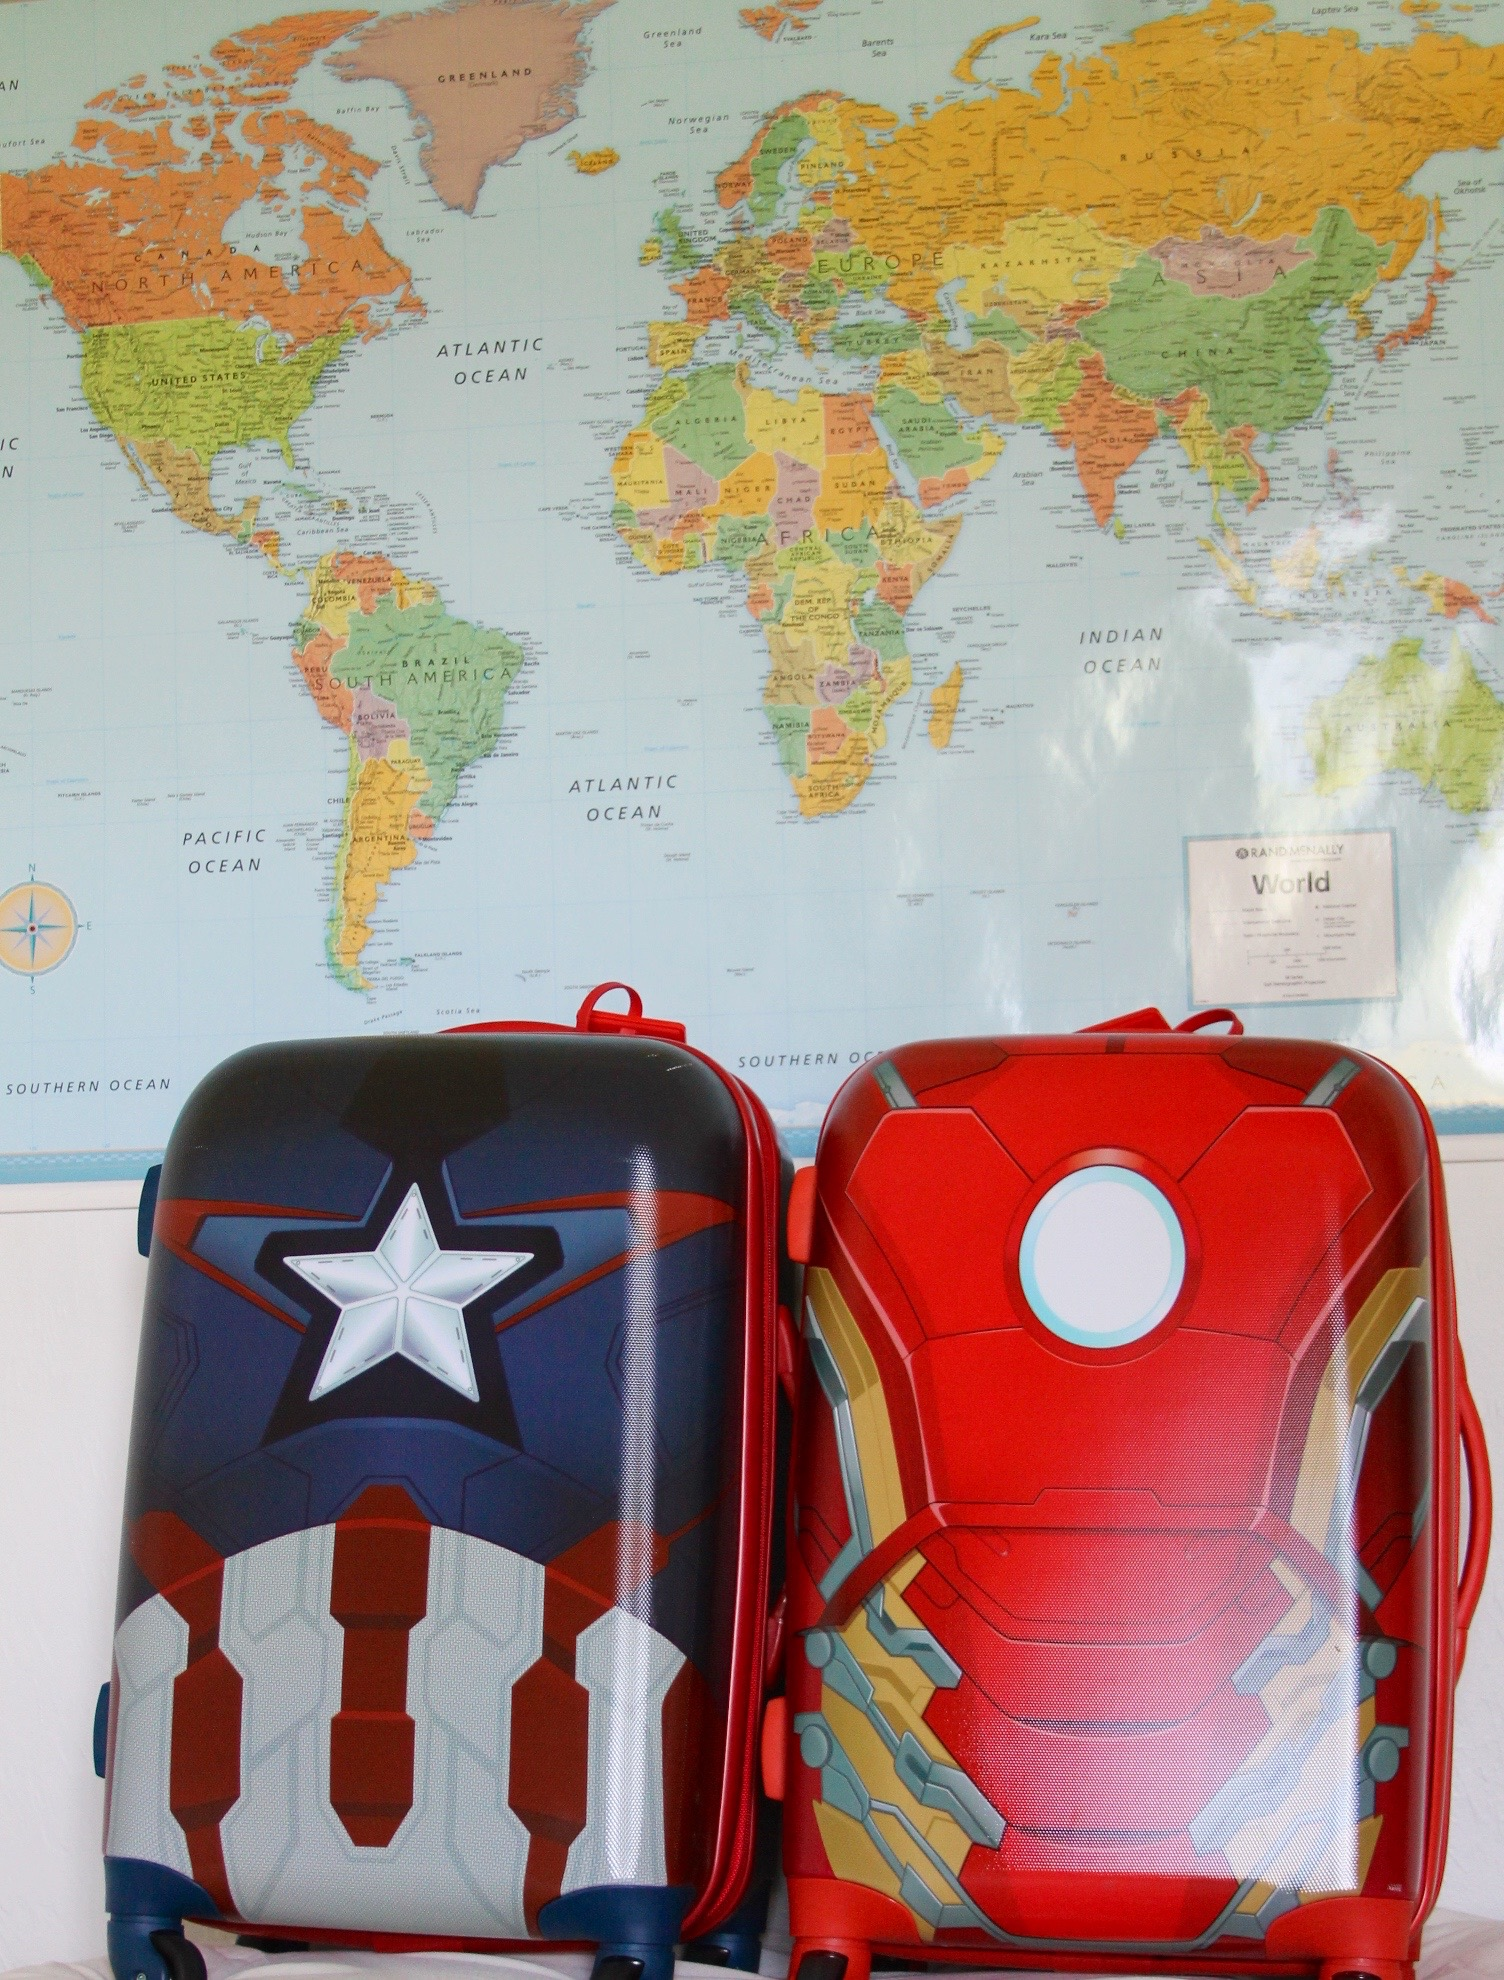 American Tourister Marvel superheroes luggage